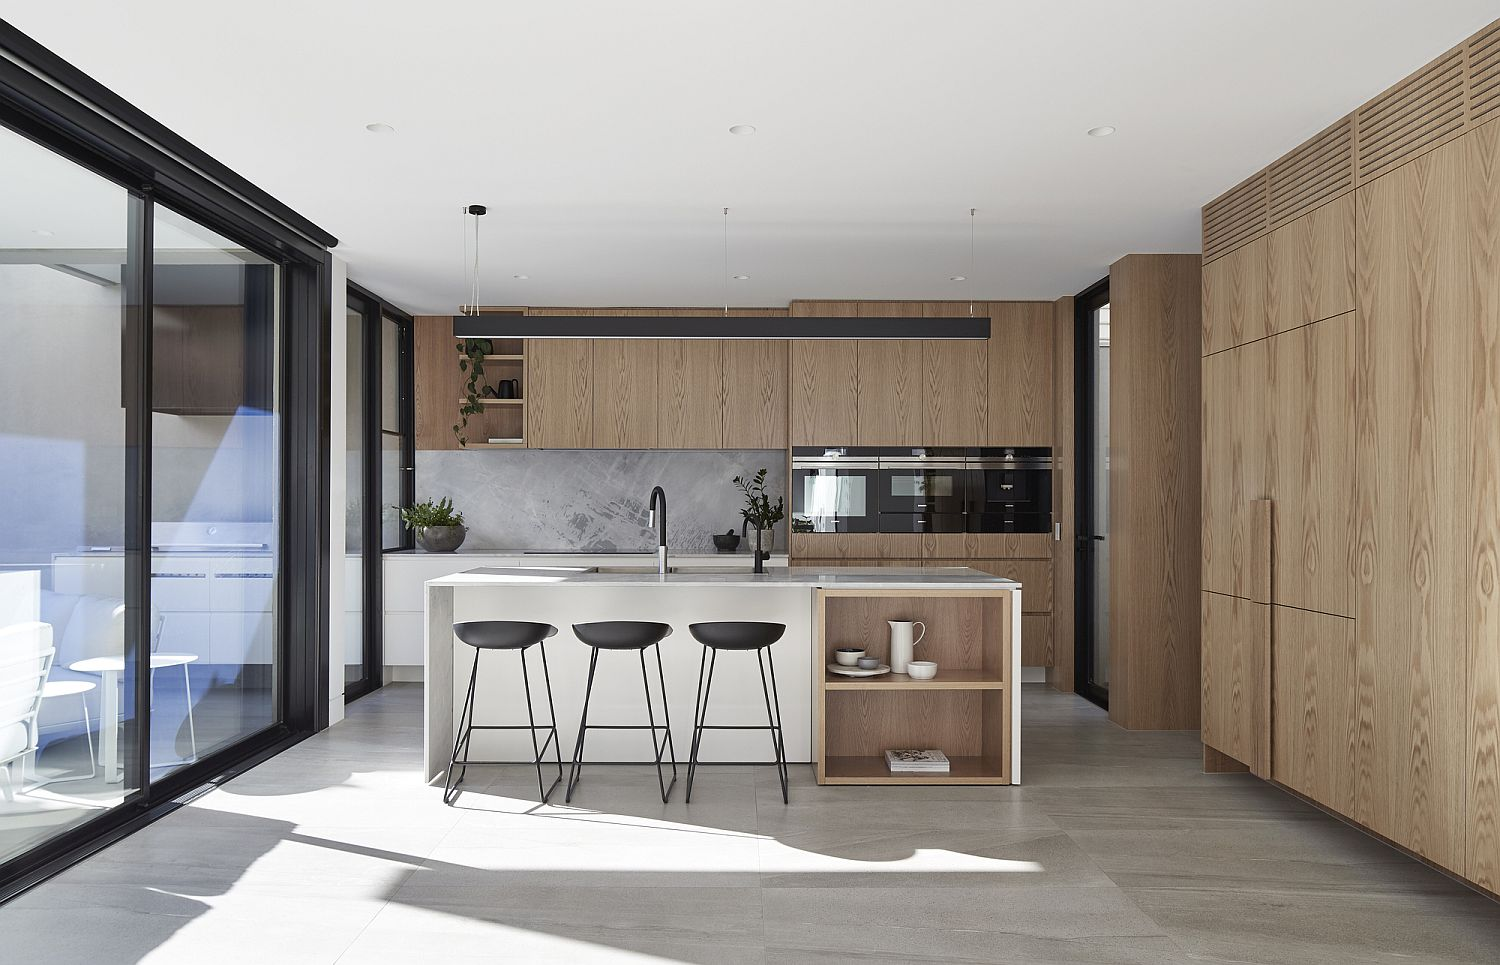 Wooden-cabinets-and-elements-bring-warmth-to-the-contemporary-kitchen